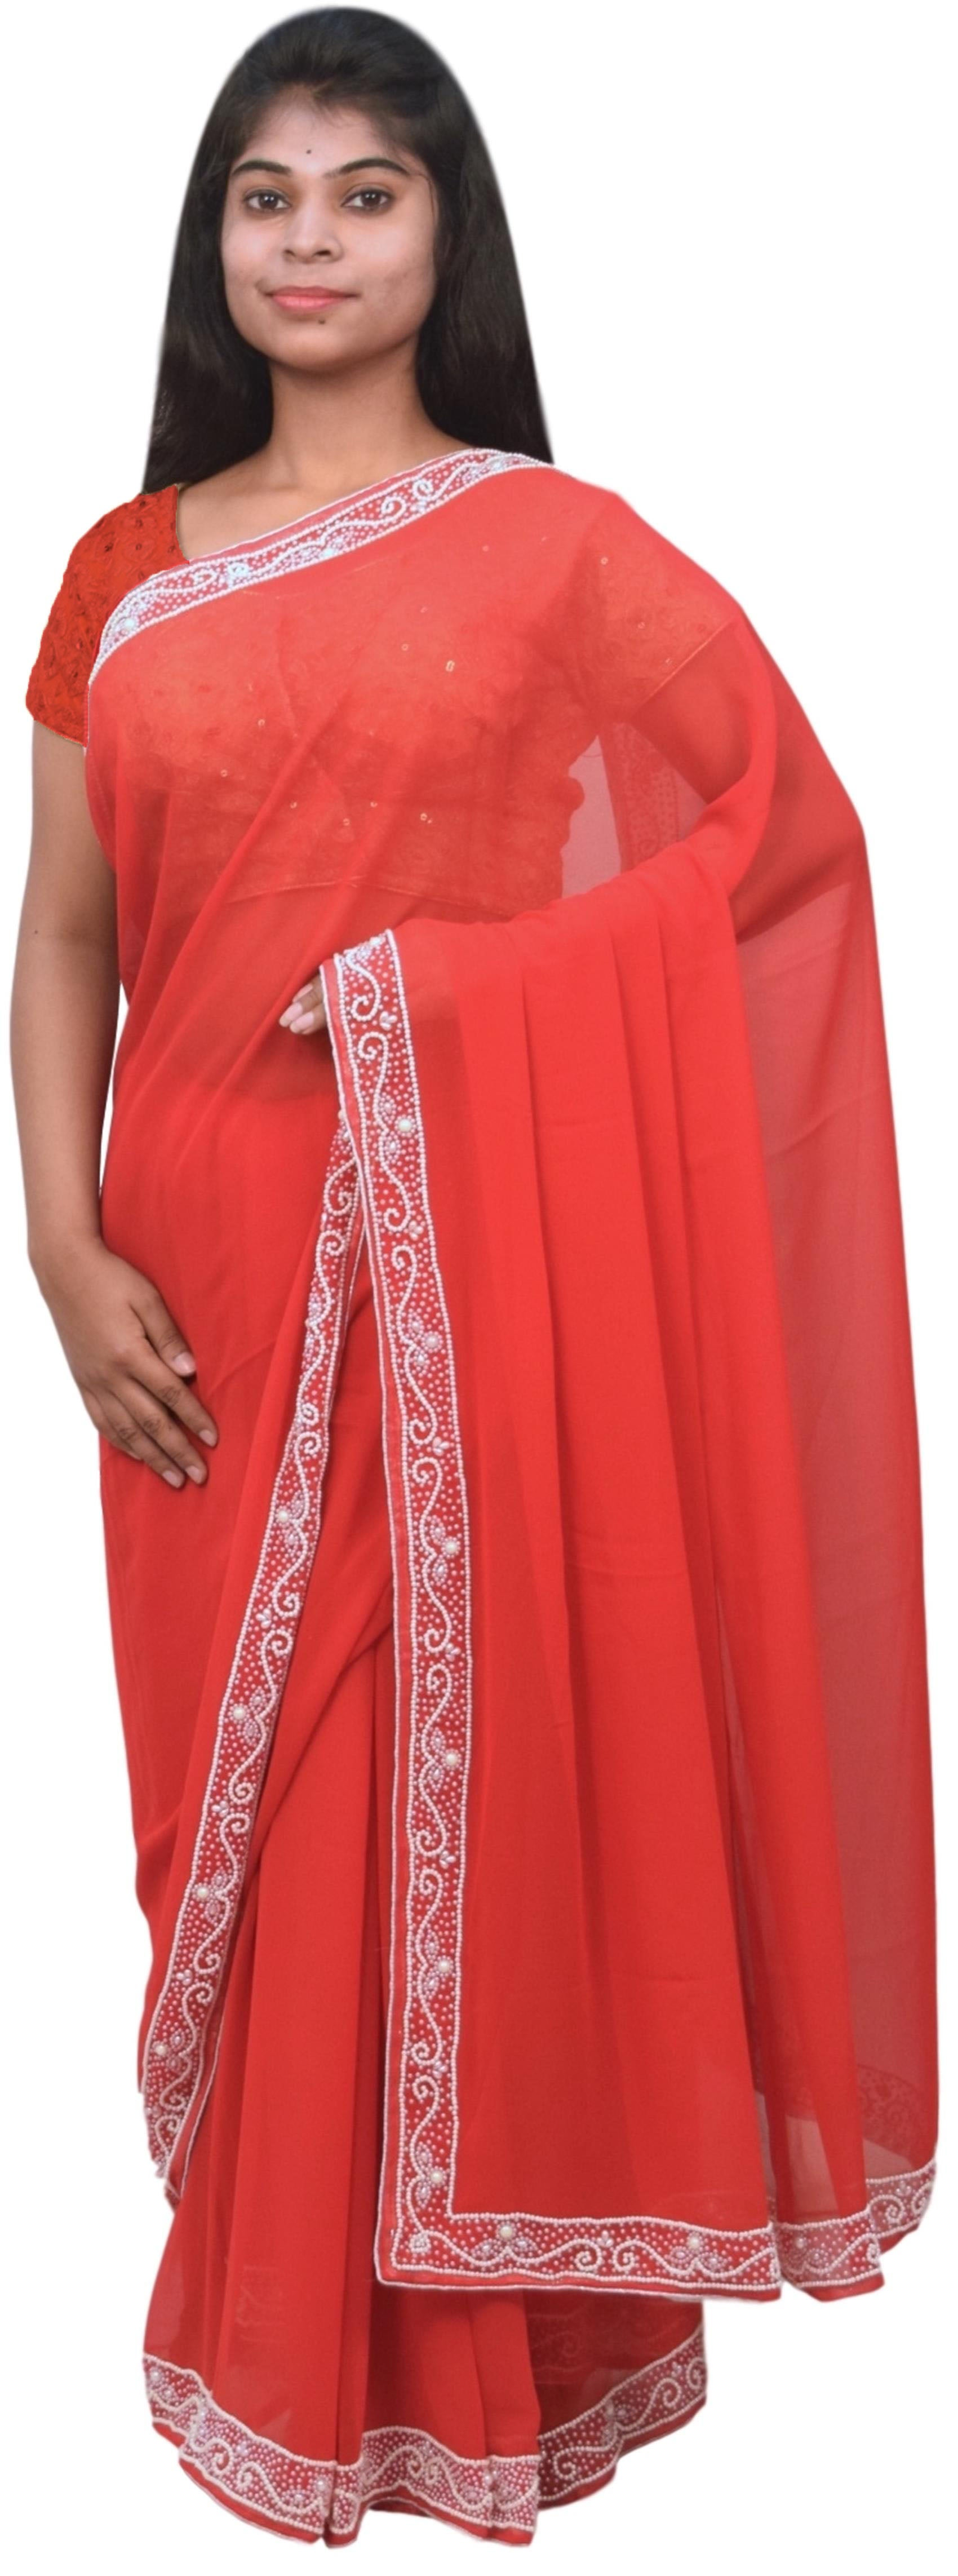 Red Designer Wedding Partywear Georgette Pearl Hand Embroidery Work Bridal Saree Sari E061